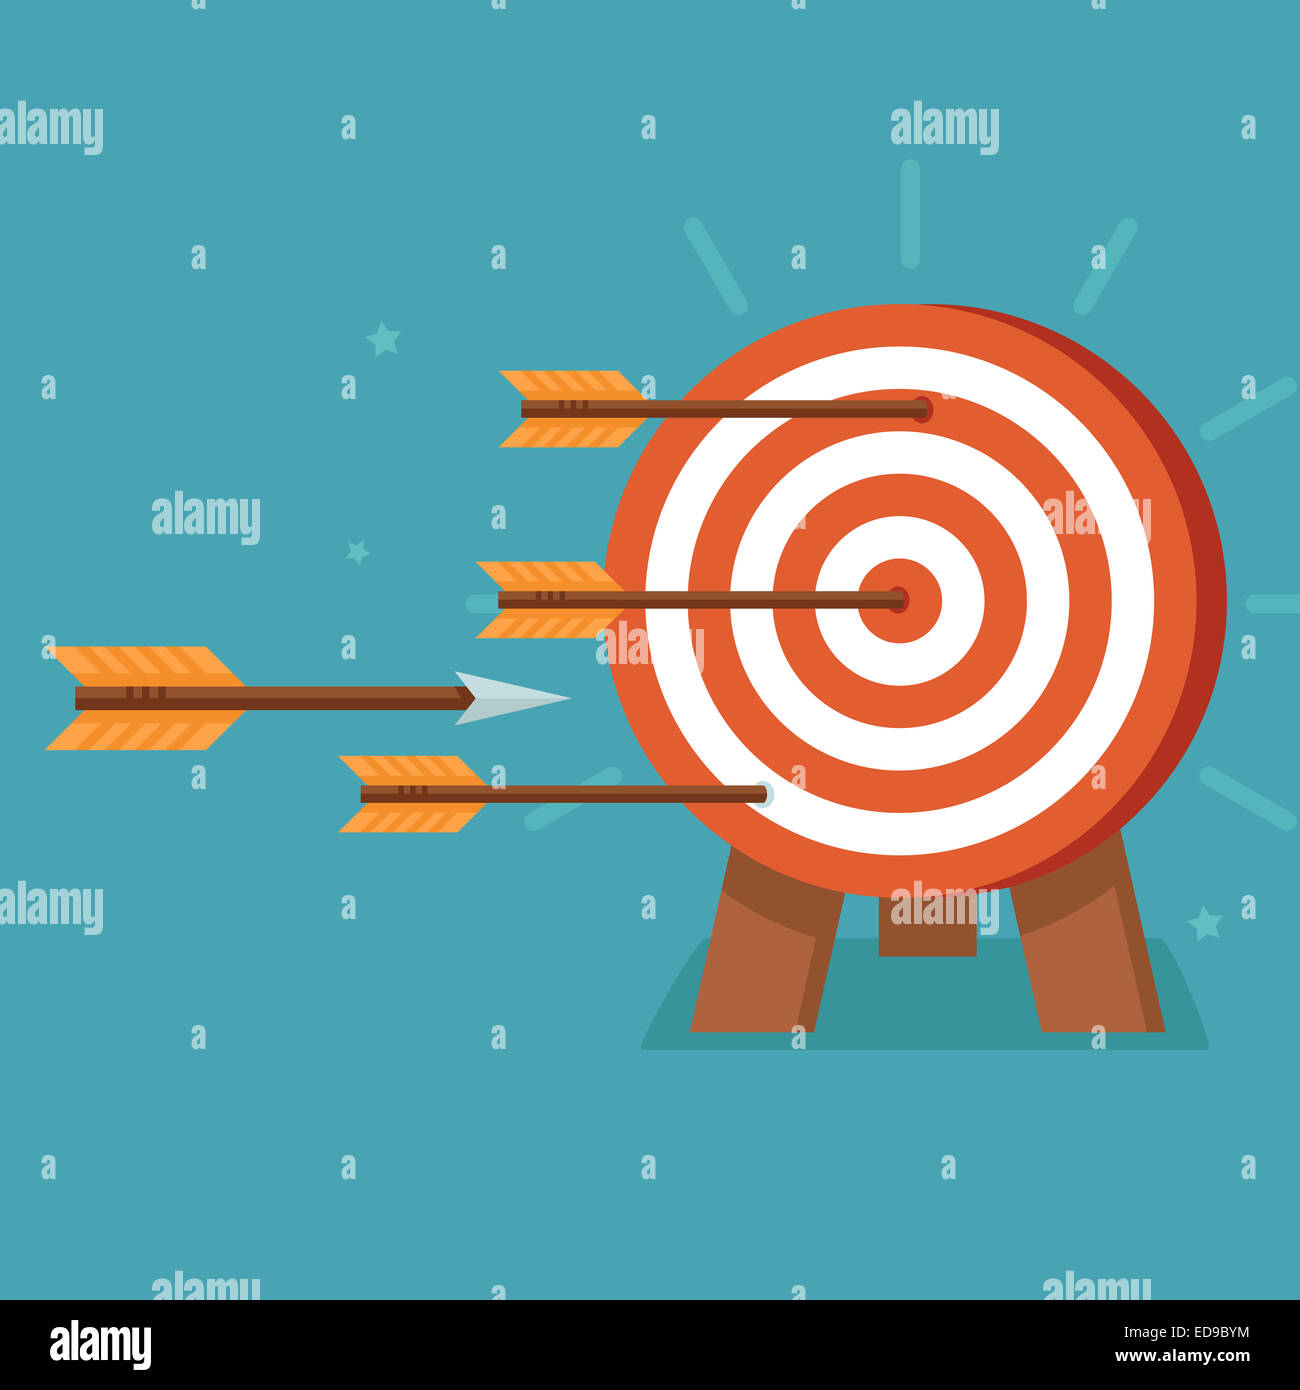 Aim with arrows on flat style - achievement goals concept - Stock Image